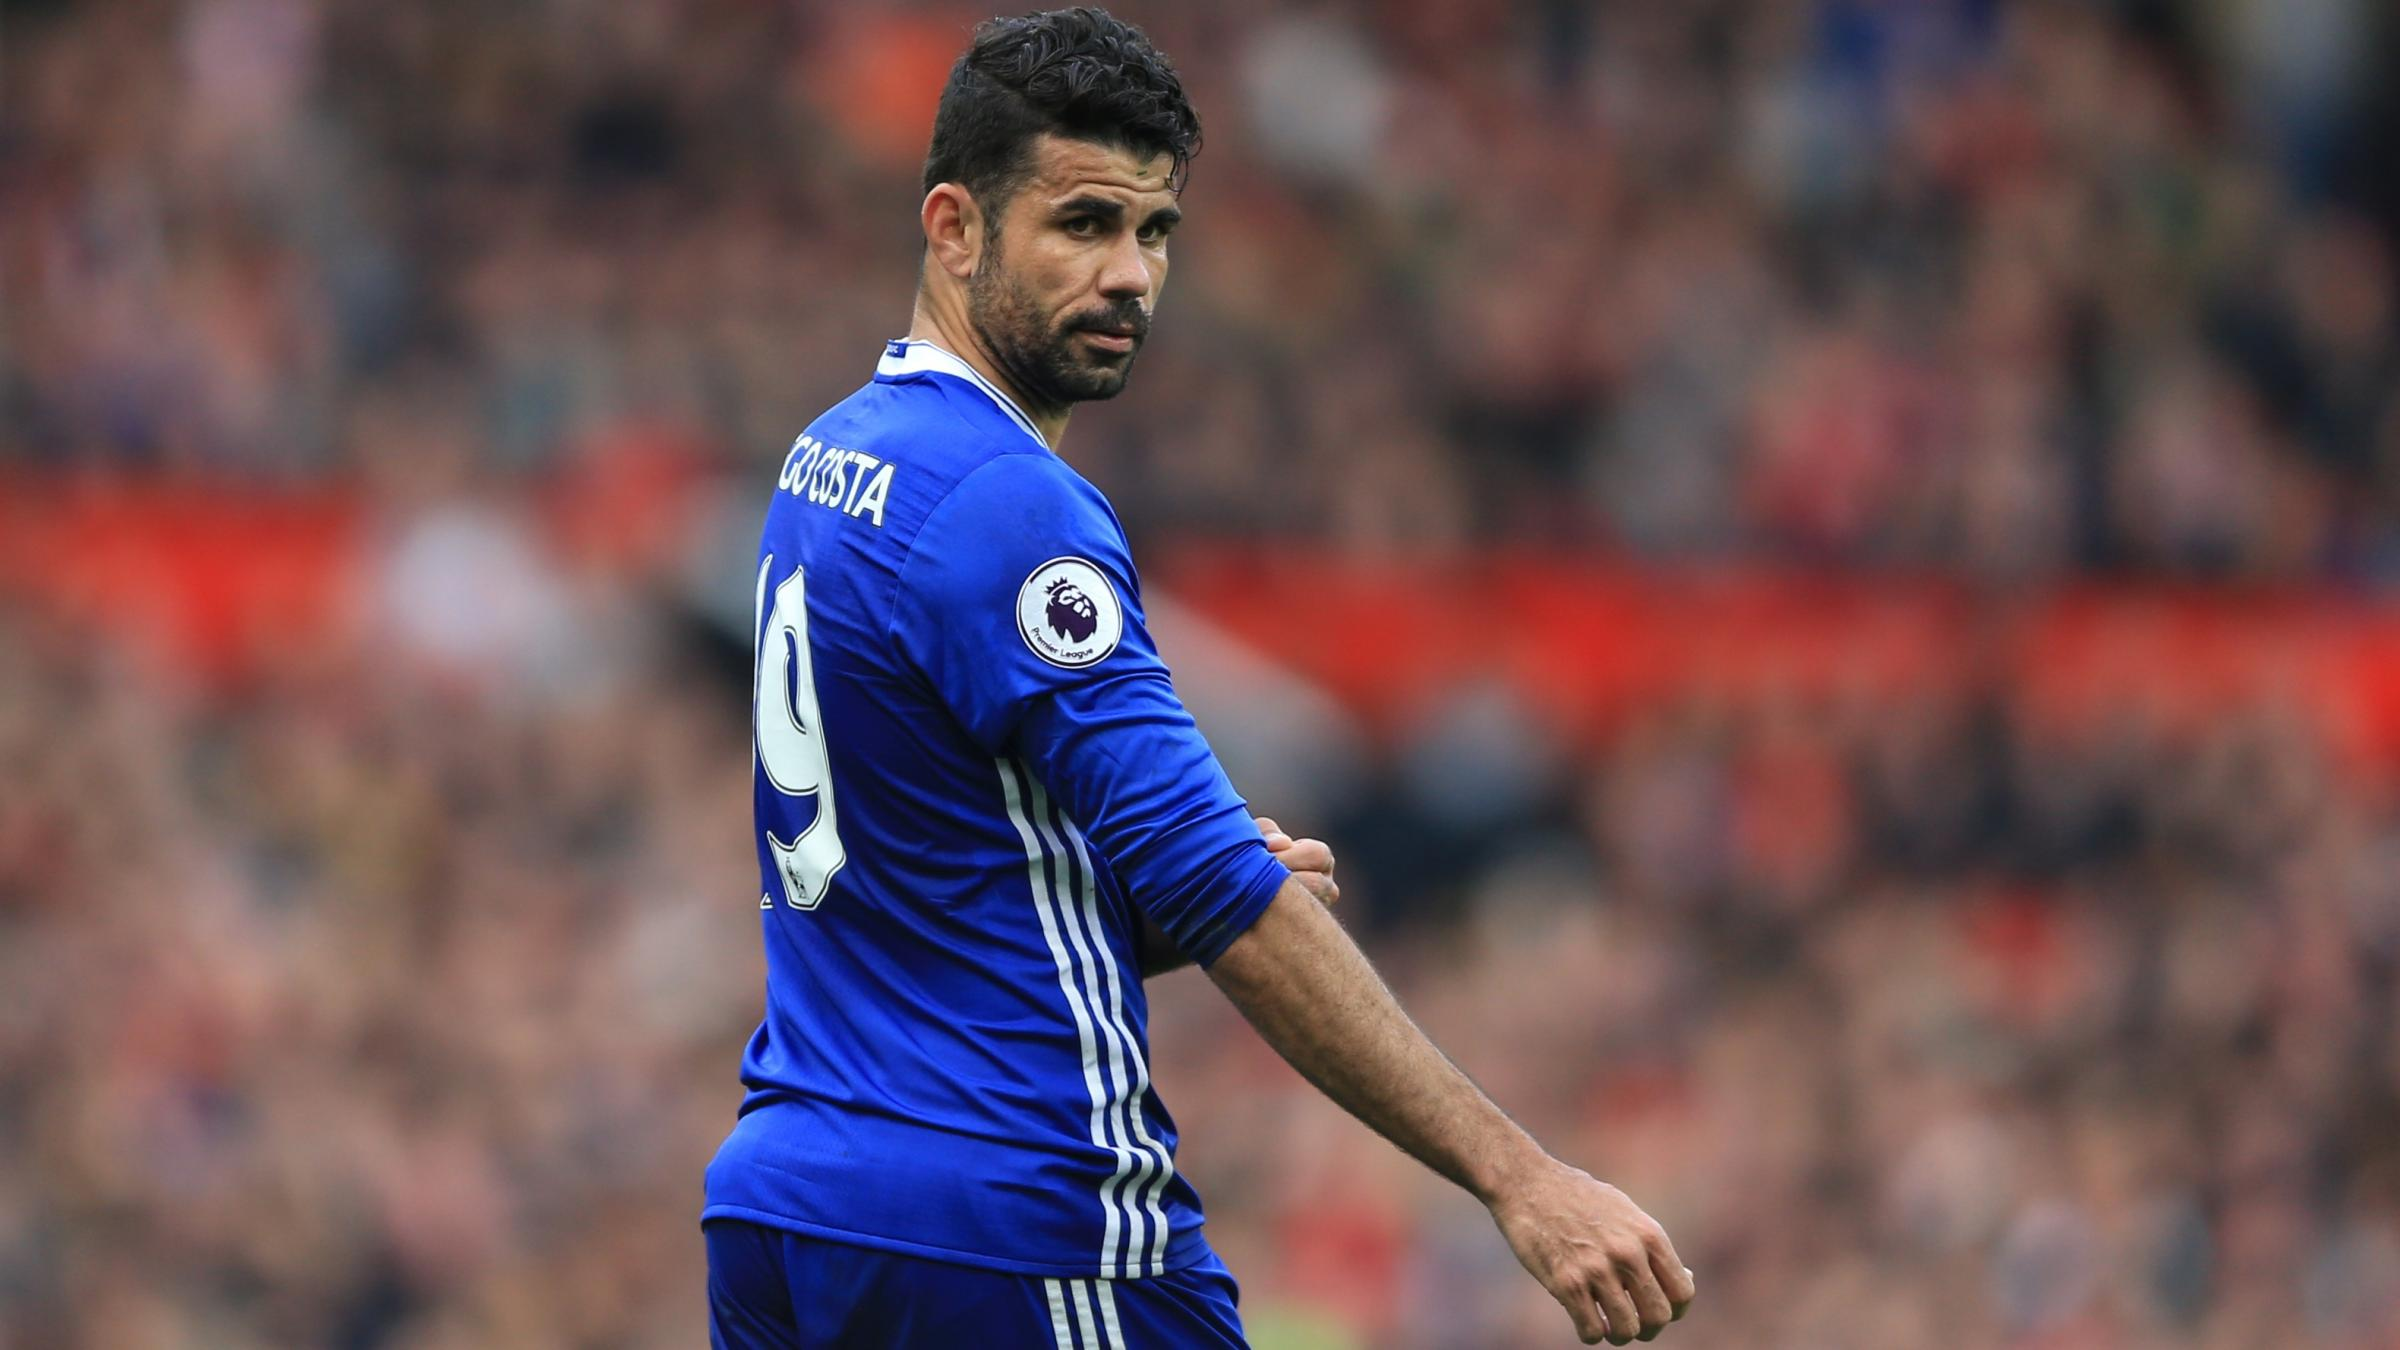 The Brutal Text Antonio Conte Sent To Diego Costa